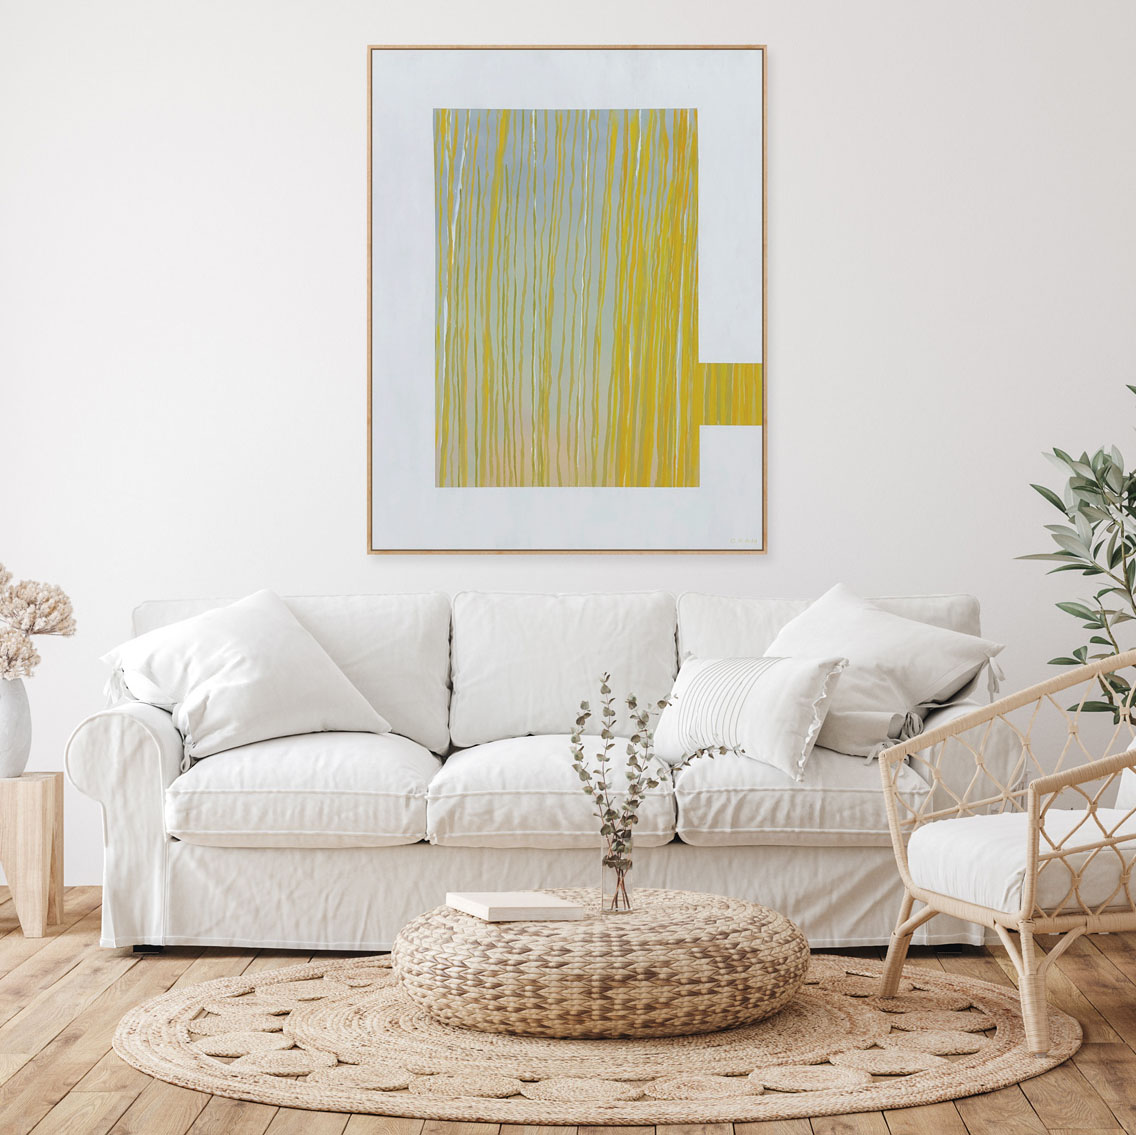 Farmhouse living room interior background, wall mockup, 3d rende